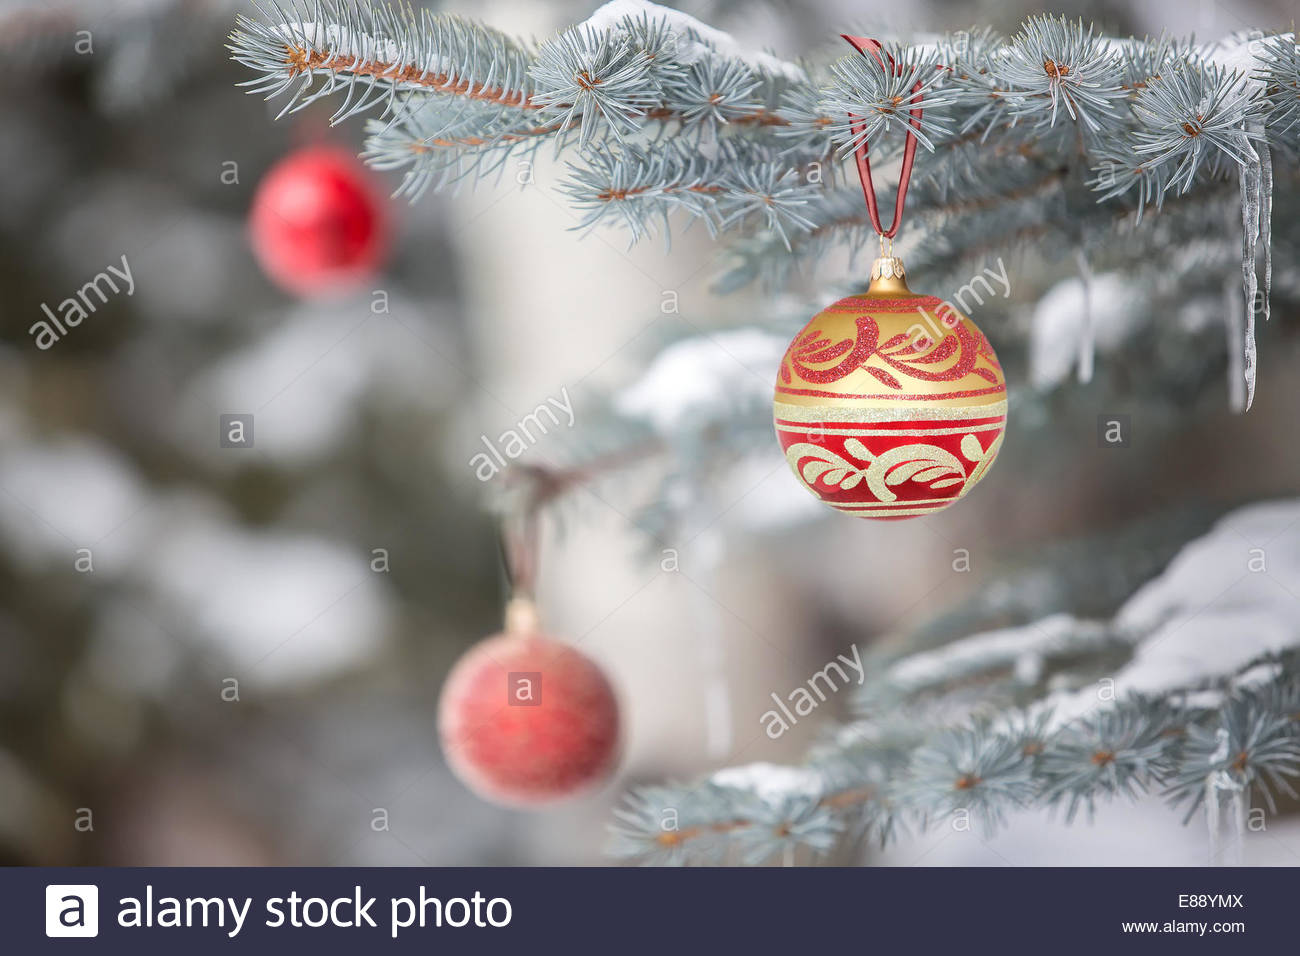 Christmas ornaments hanging from tree - Stock Image